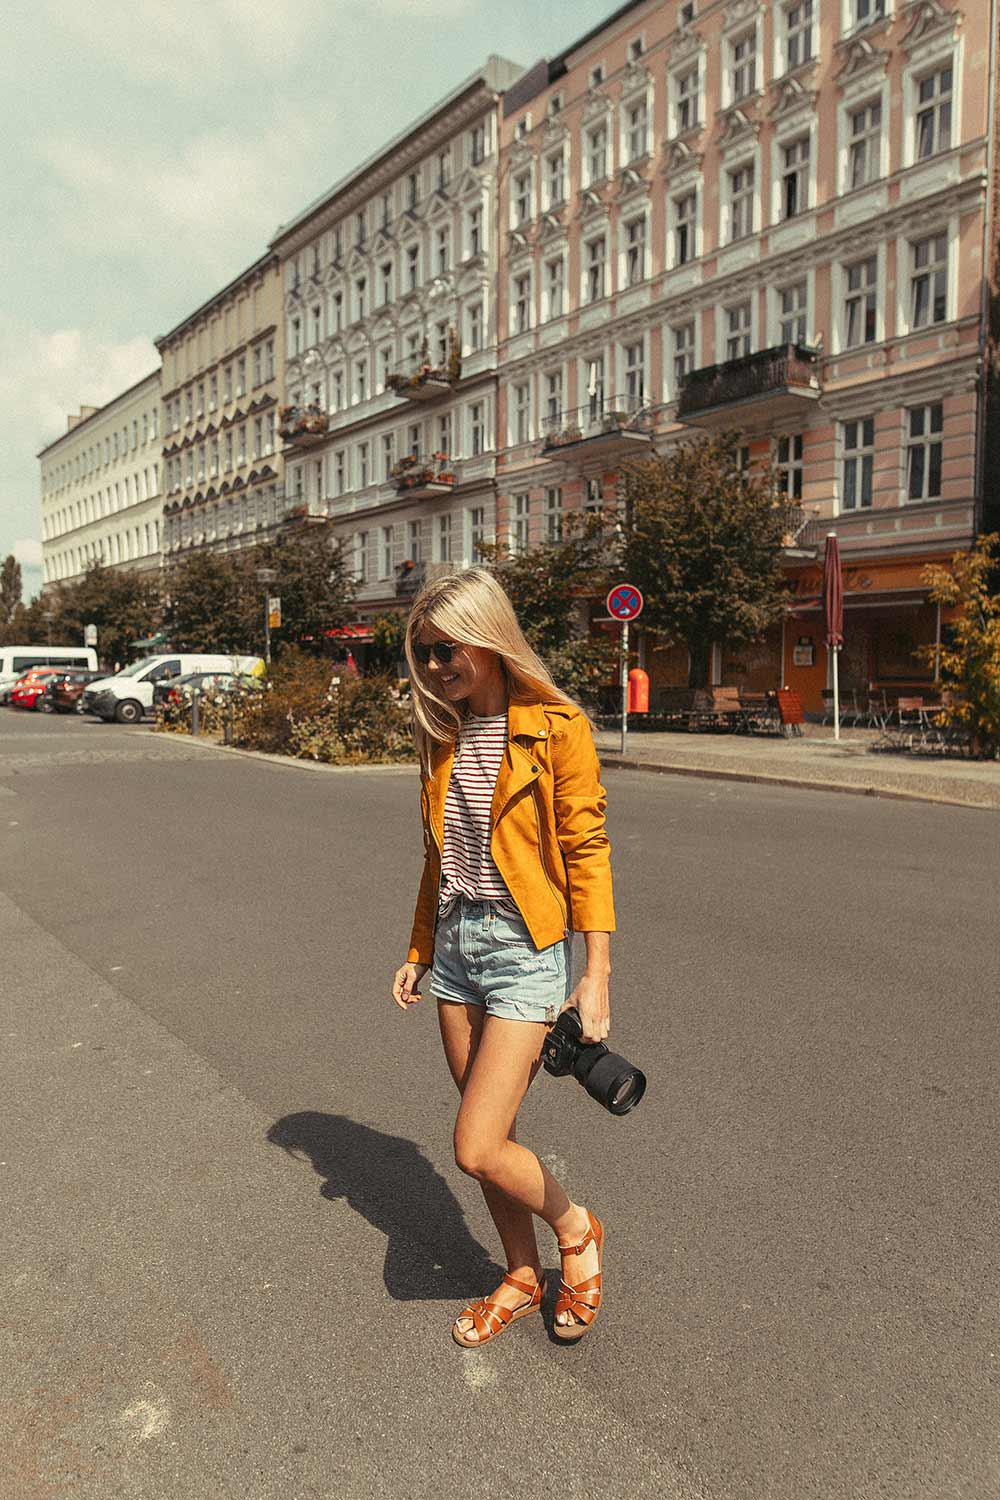 eimear-walking-in-berlin-with-her-camera